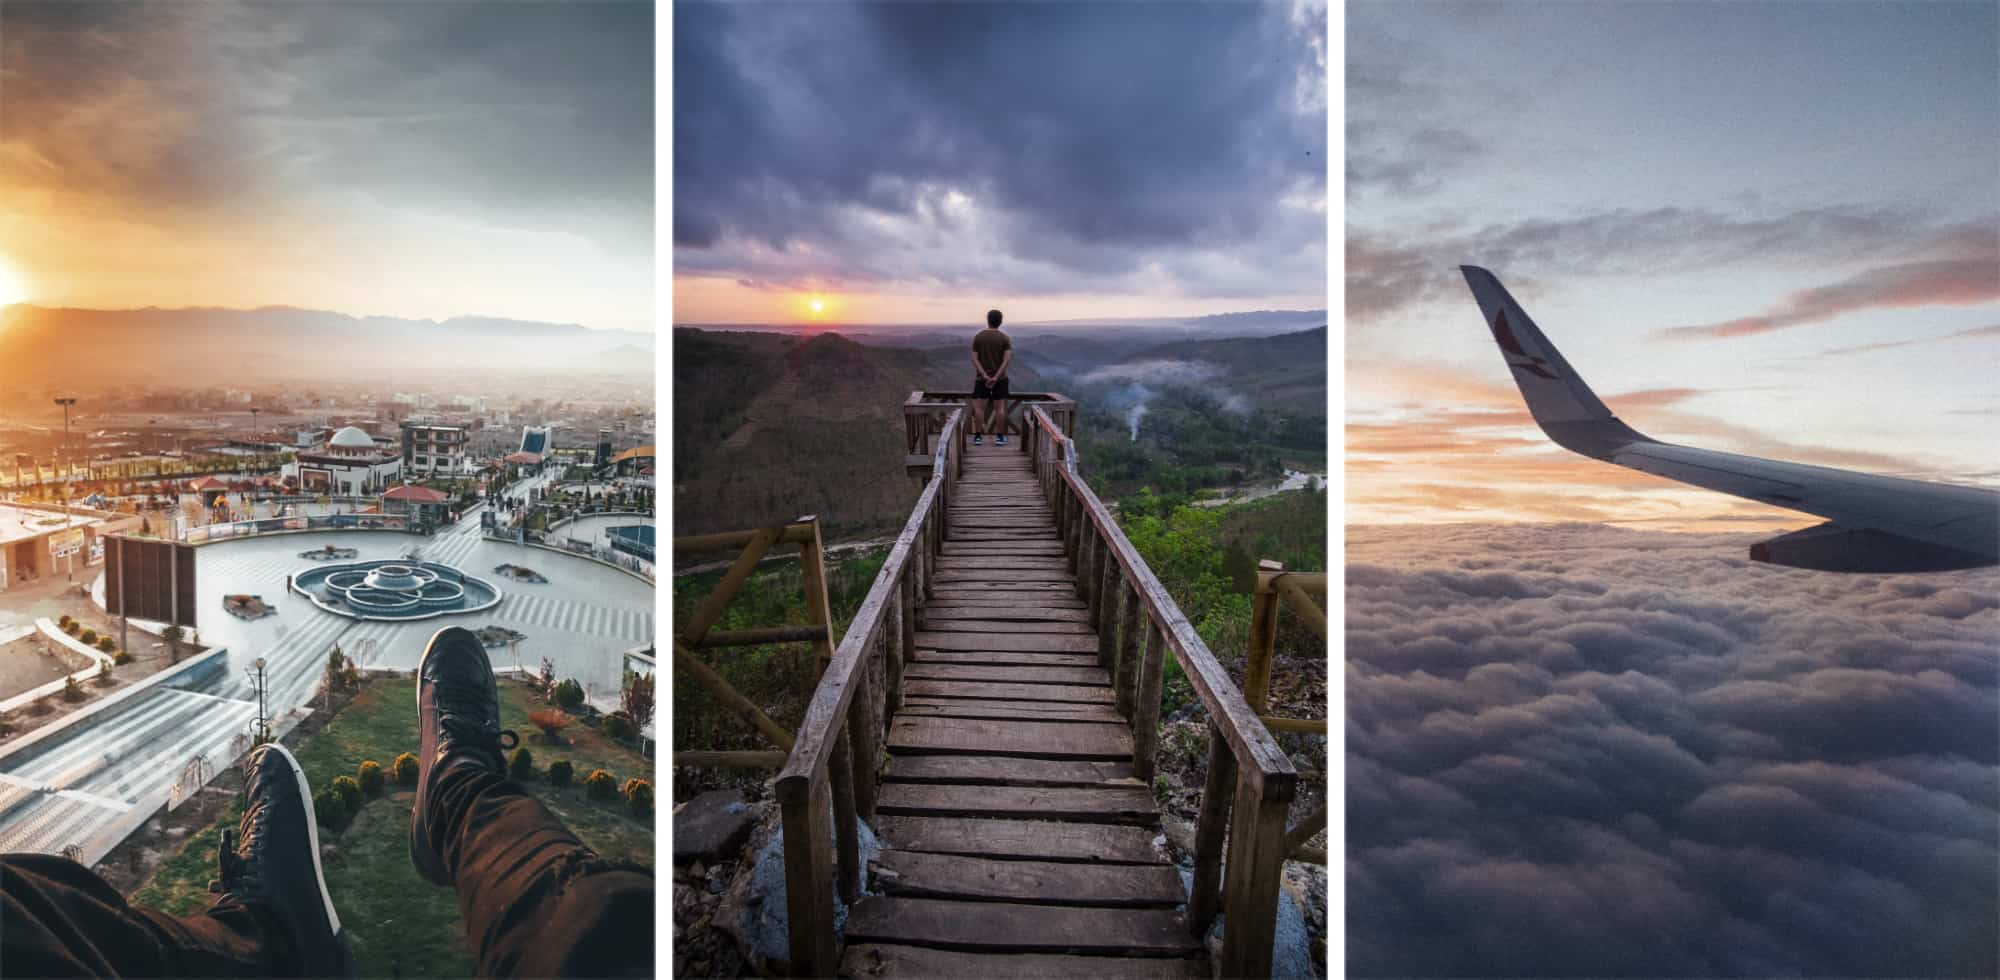 41 Study Abroad Quotes to Inspire Your Dreams